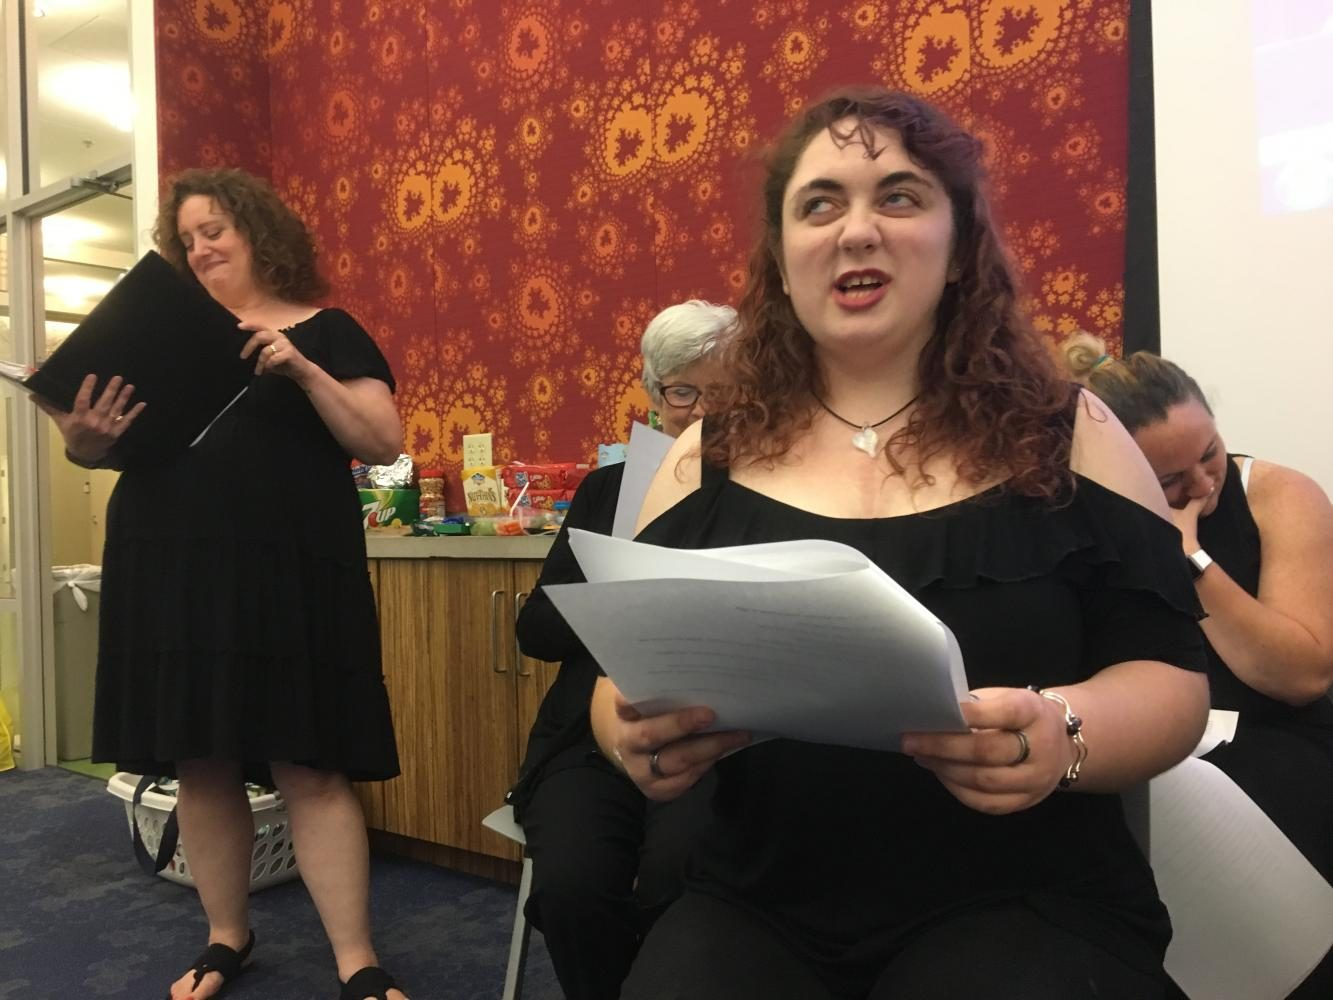 Junior philosophy and theatre major Andrea Morgan Doyle reads lines for one of the plays presented by the STAGEtwo Playwriting Workshop participants and community actors. Dale wrote a play that her fellow students performed at the event Friday evening.